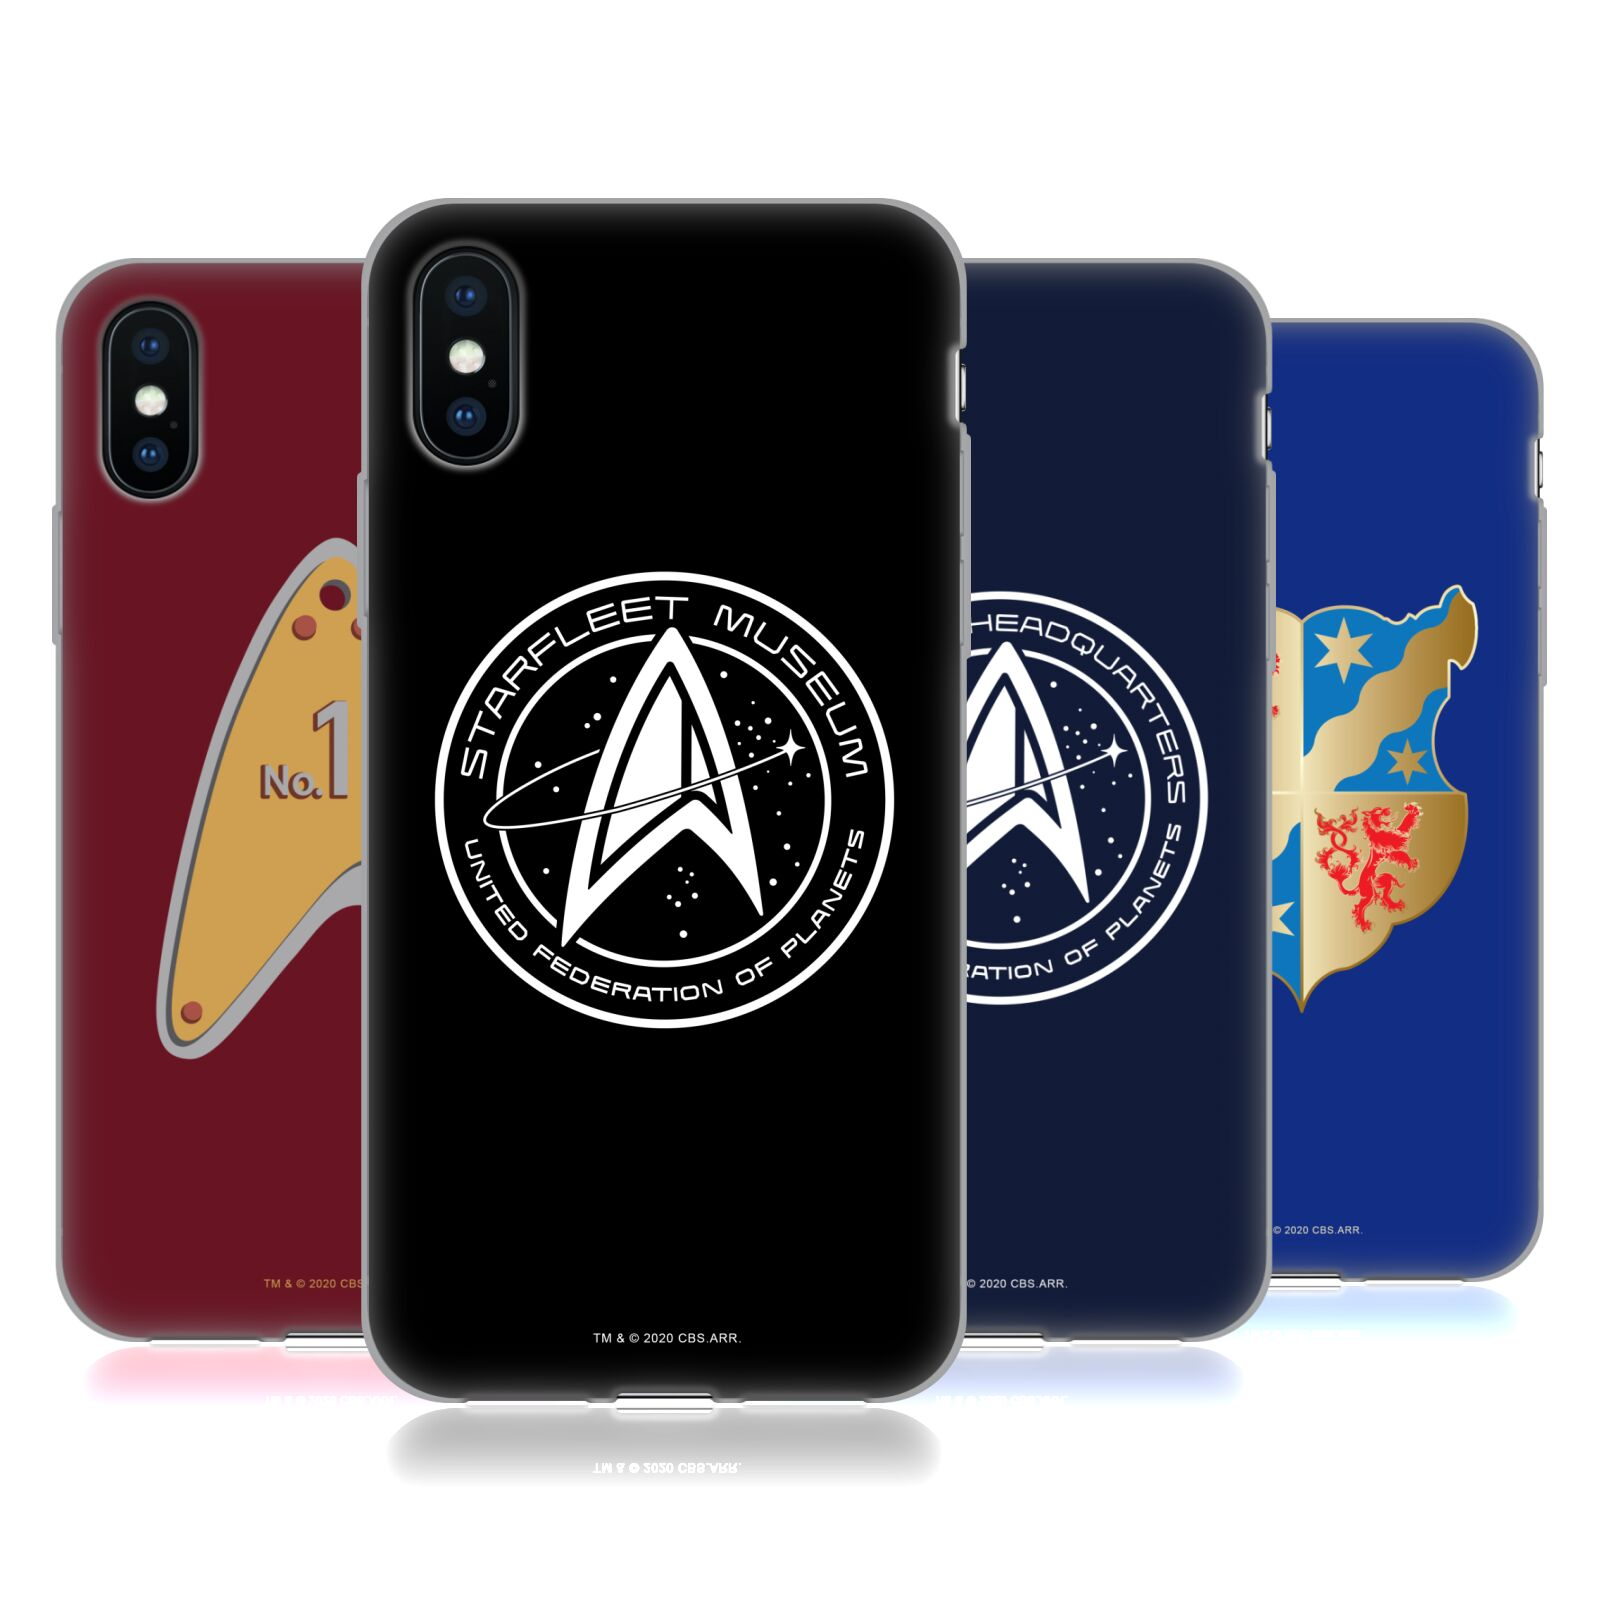 Official Star Trek: Picard Badges